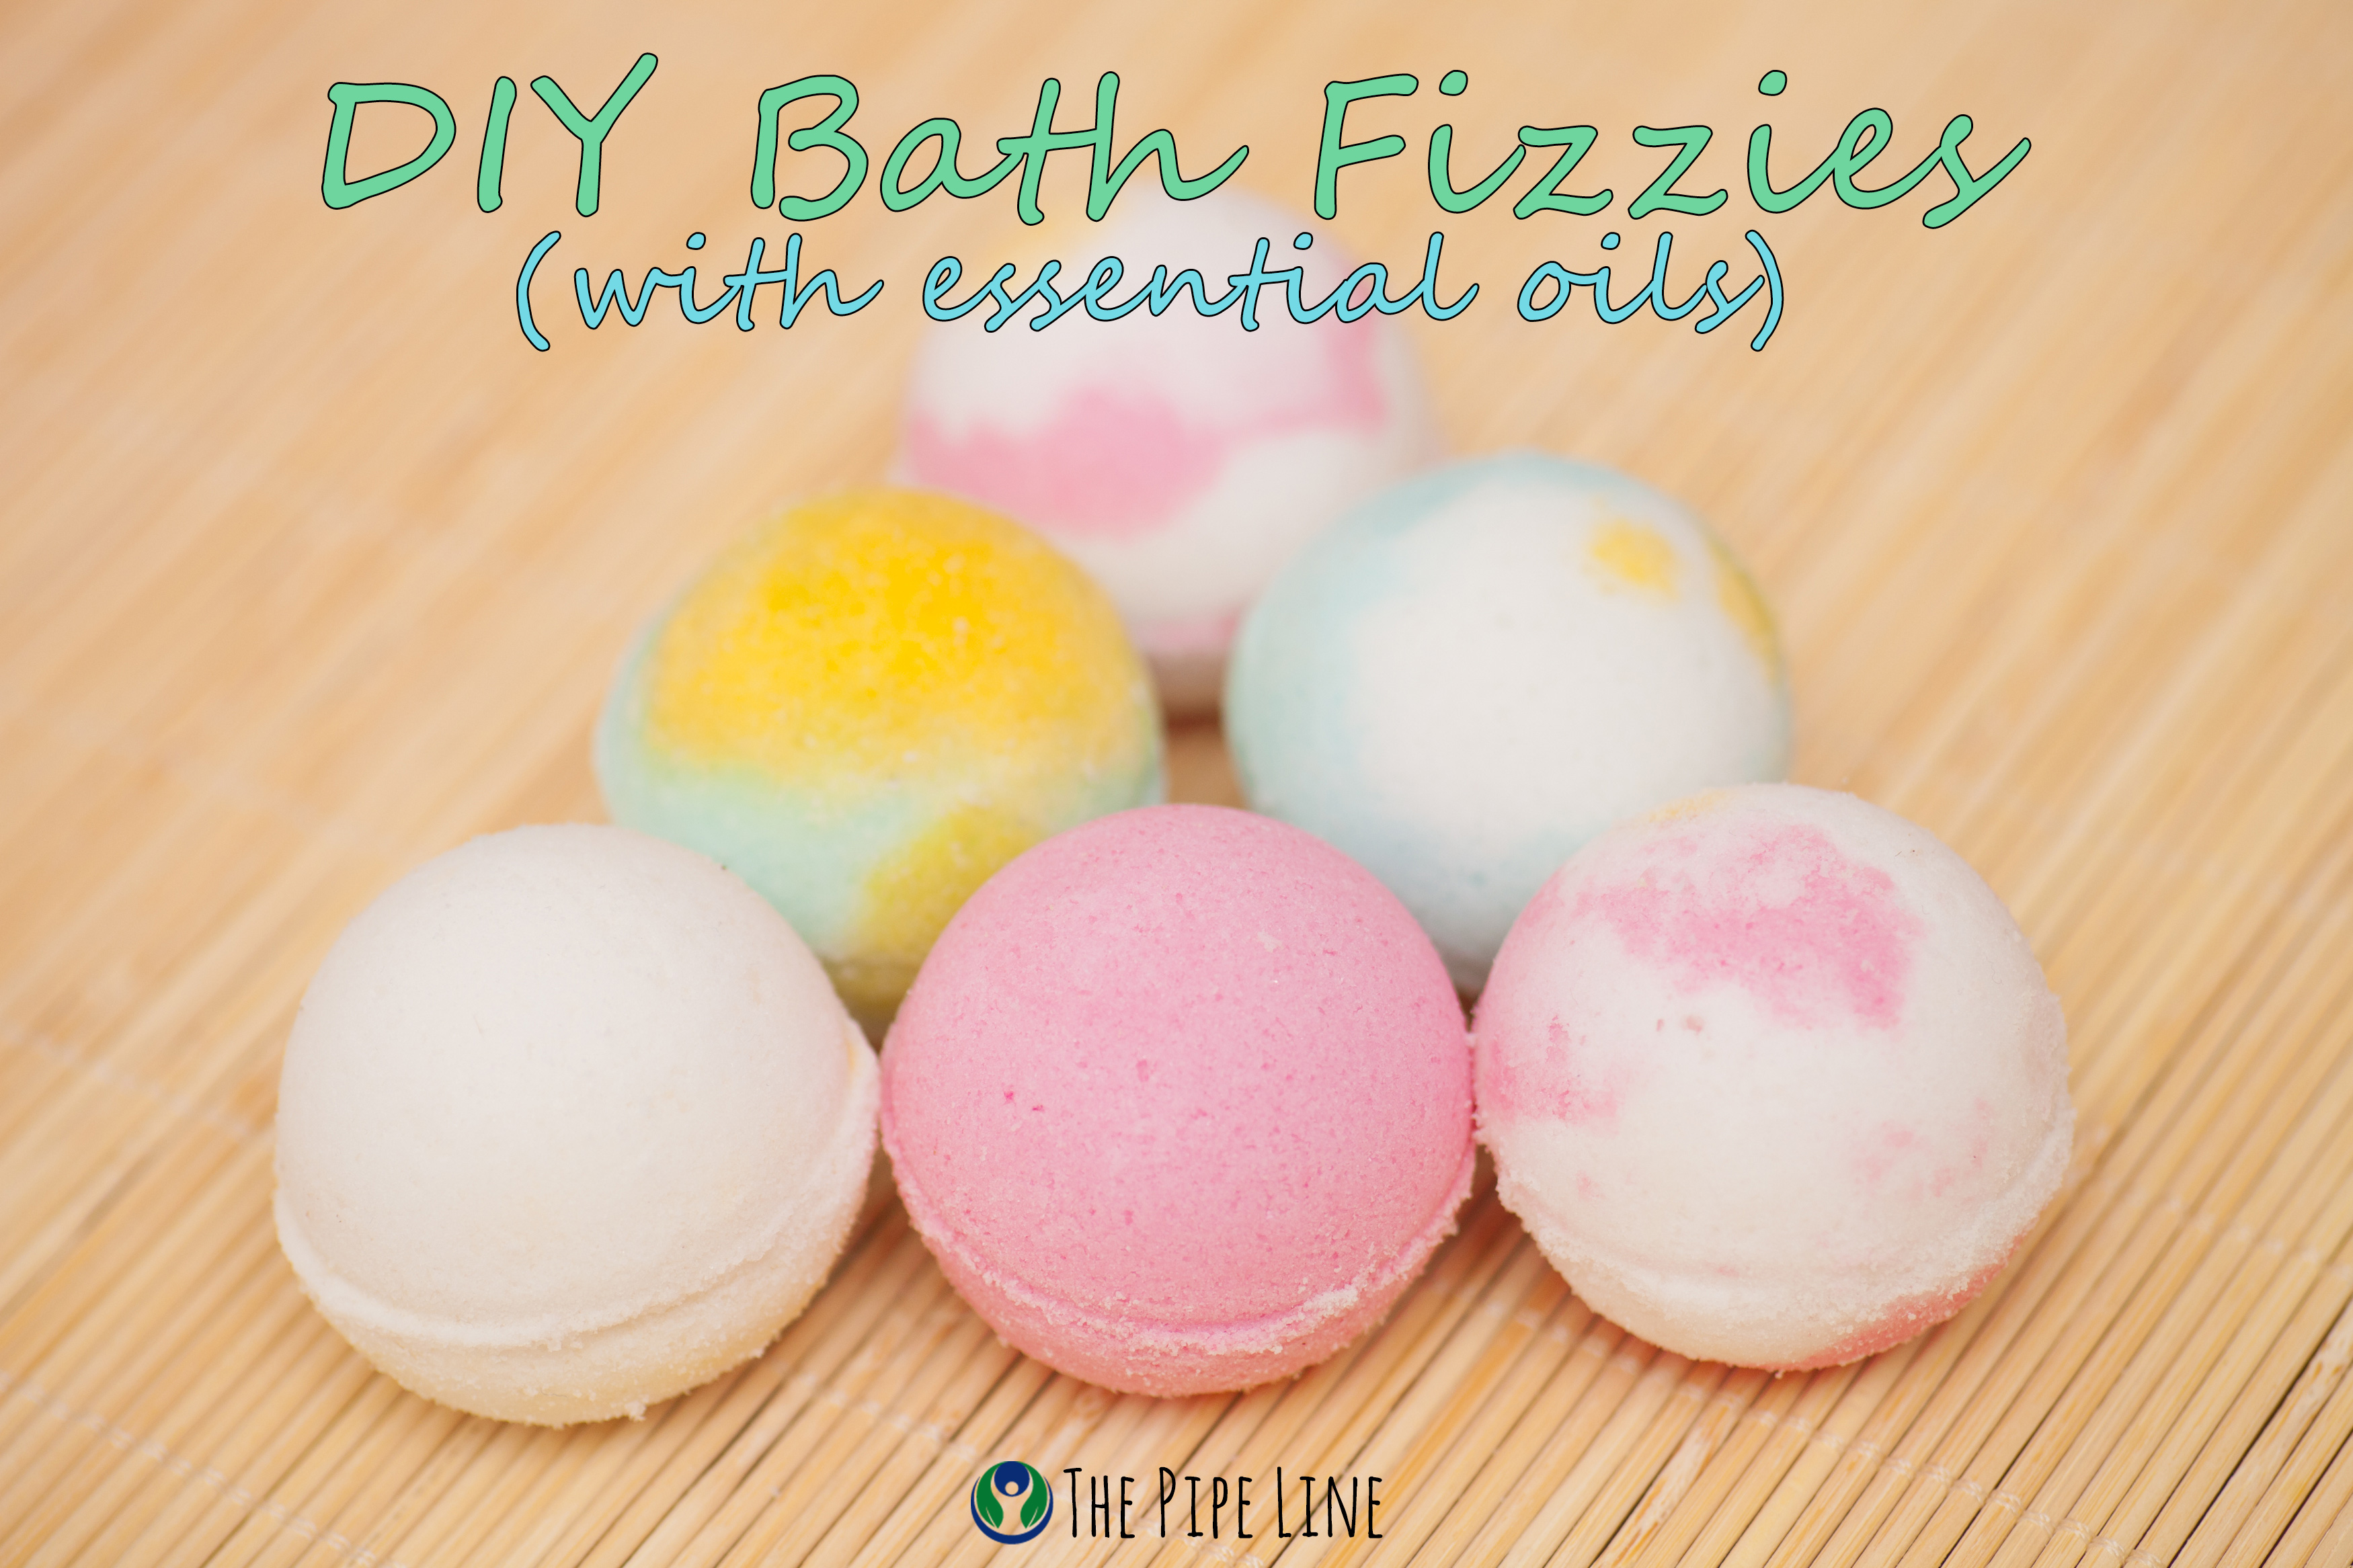 HOW TO: DIY BATH FIZZIES...